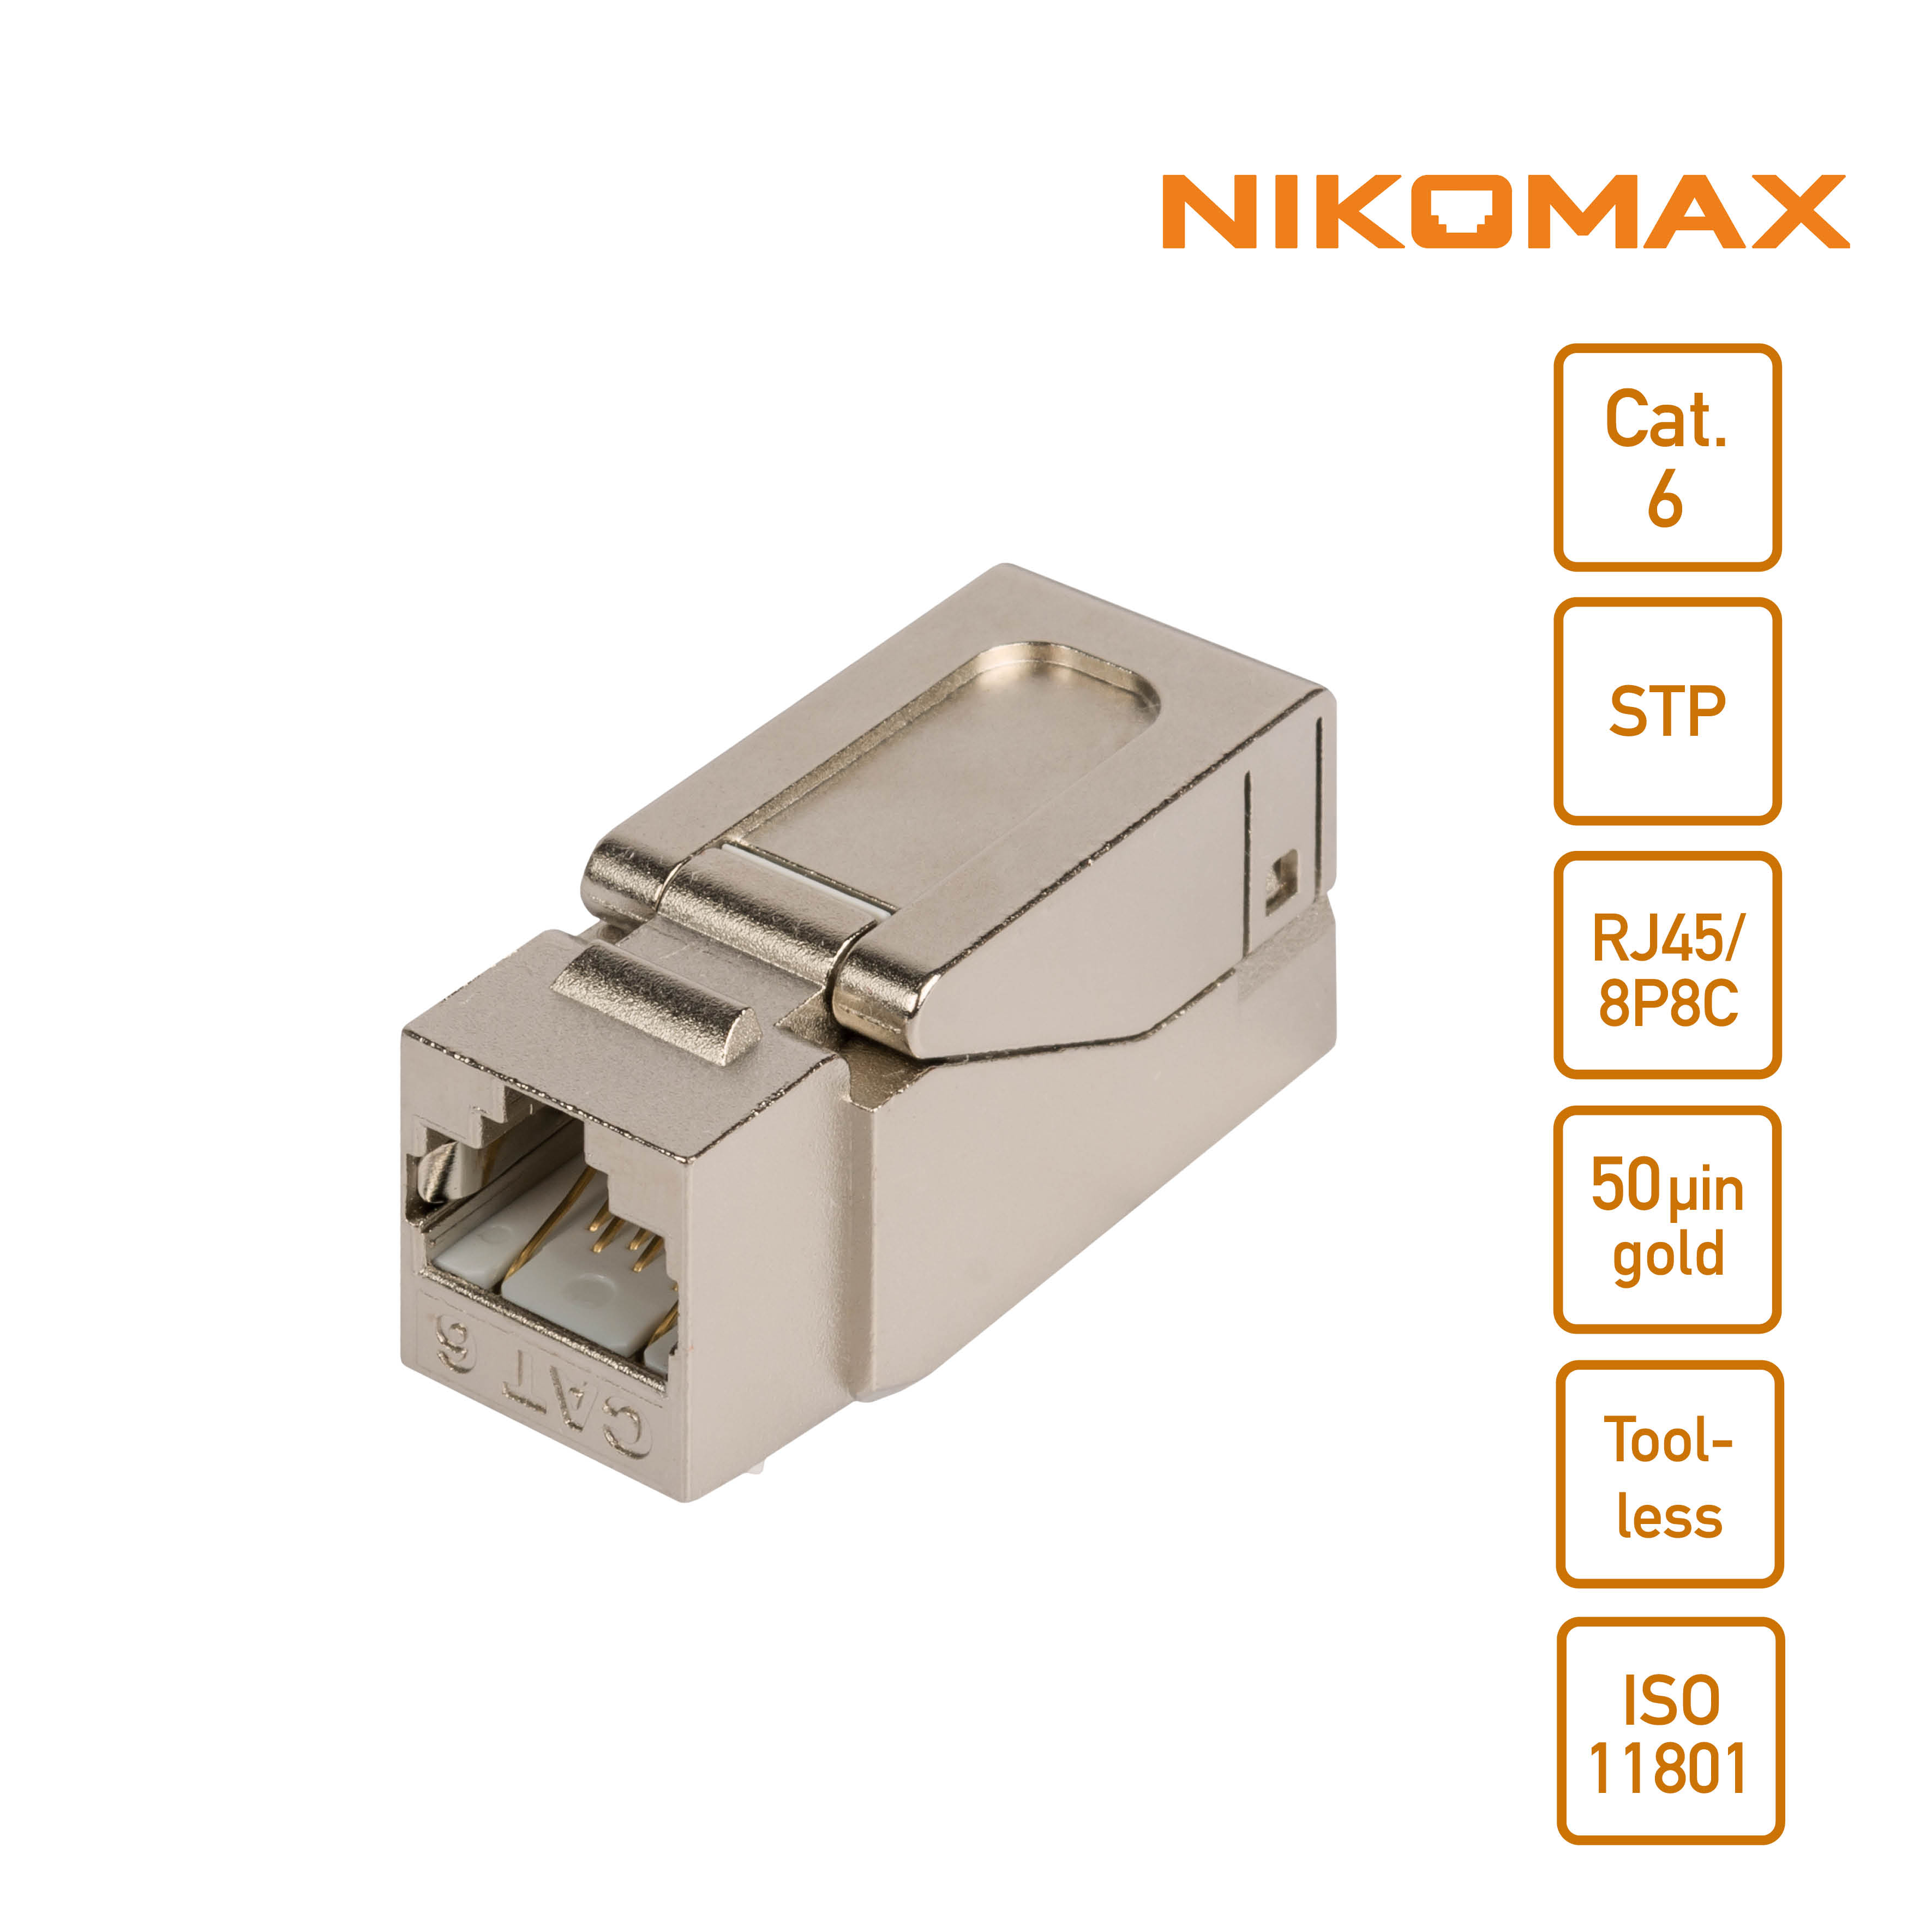 NIKOMAX keystone jack module, tool-less, shielded, cat. 6